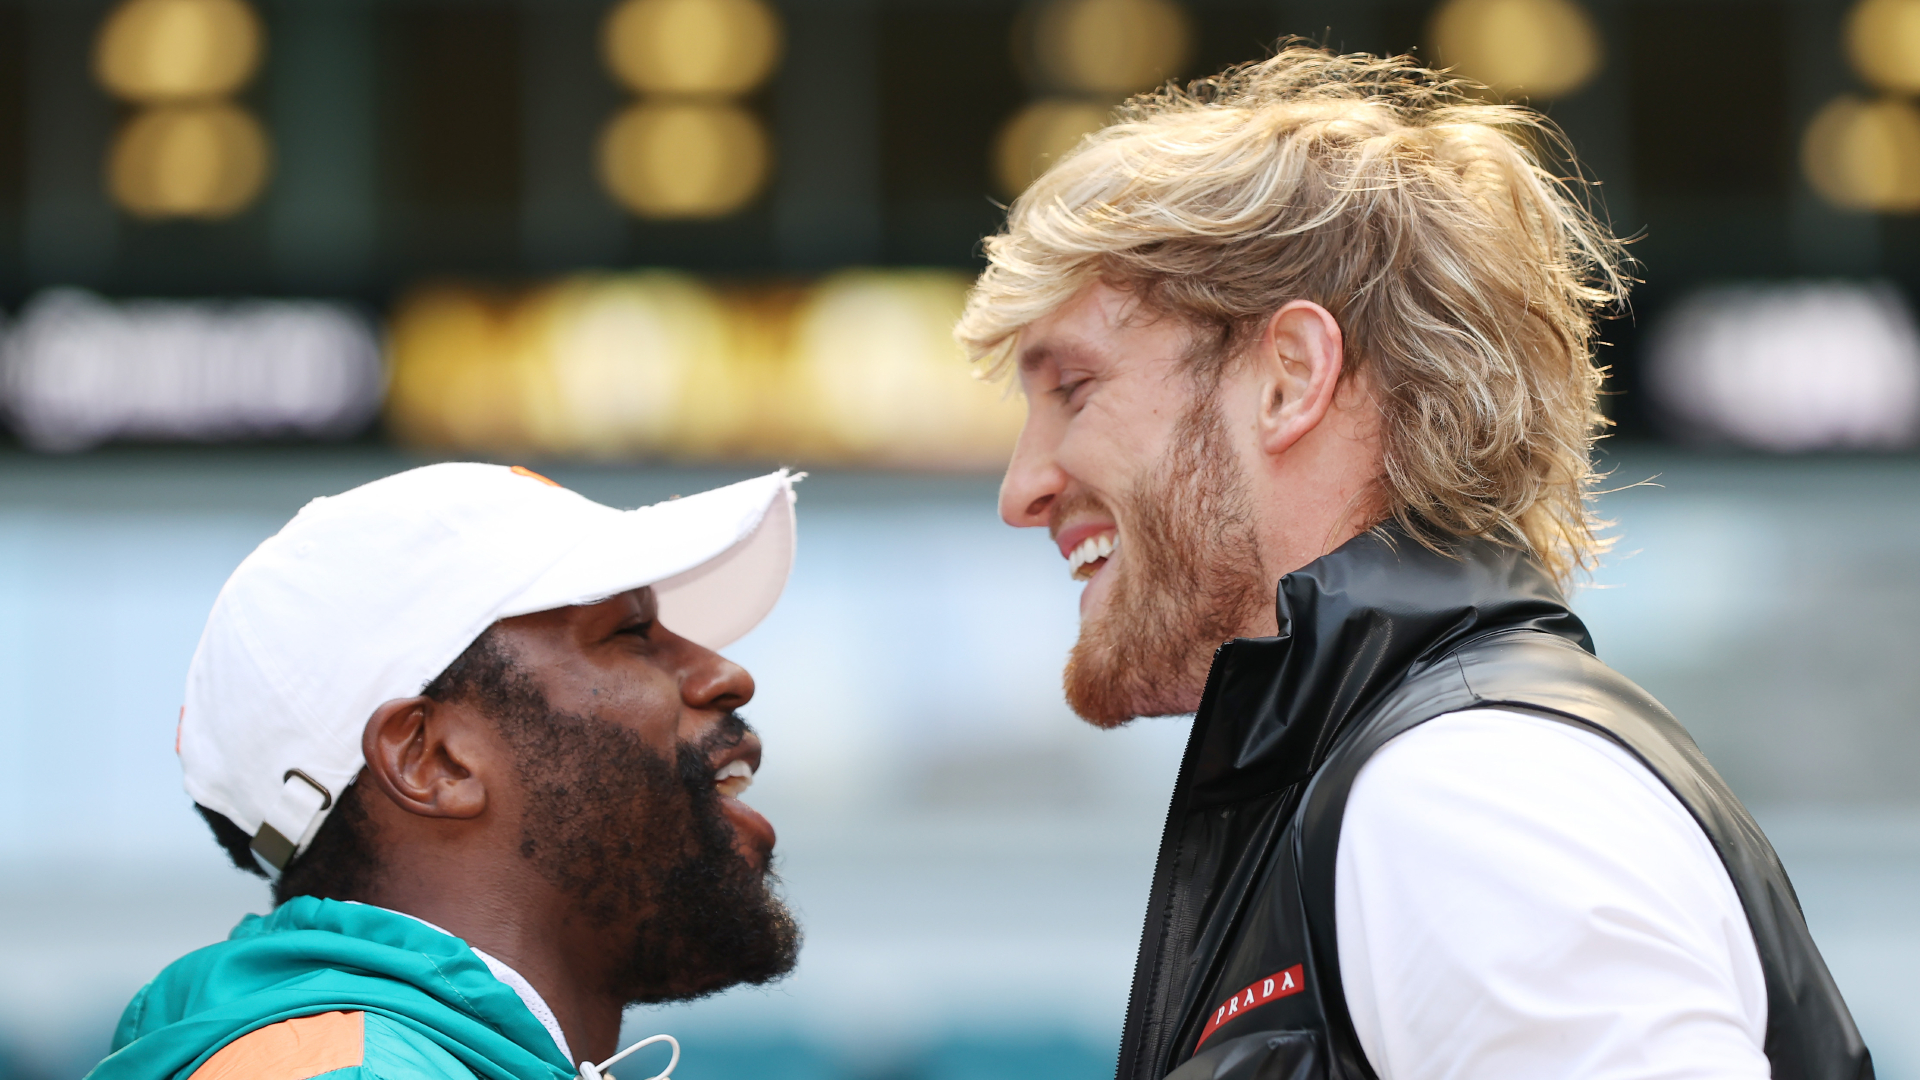 Logan Paul says he will KO Floyd Mayweather and retire as the greatest boxer on the planet - Paul